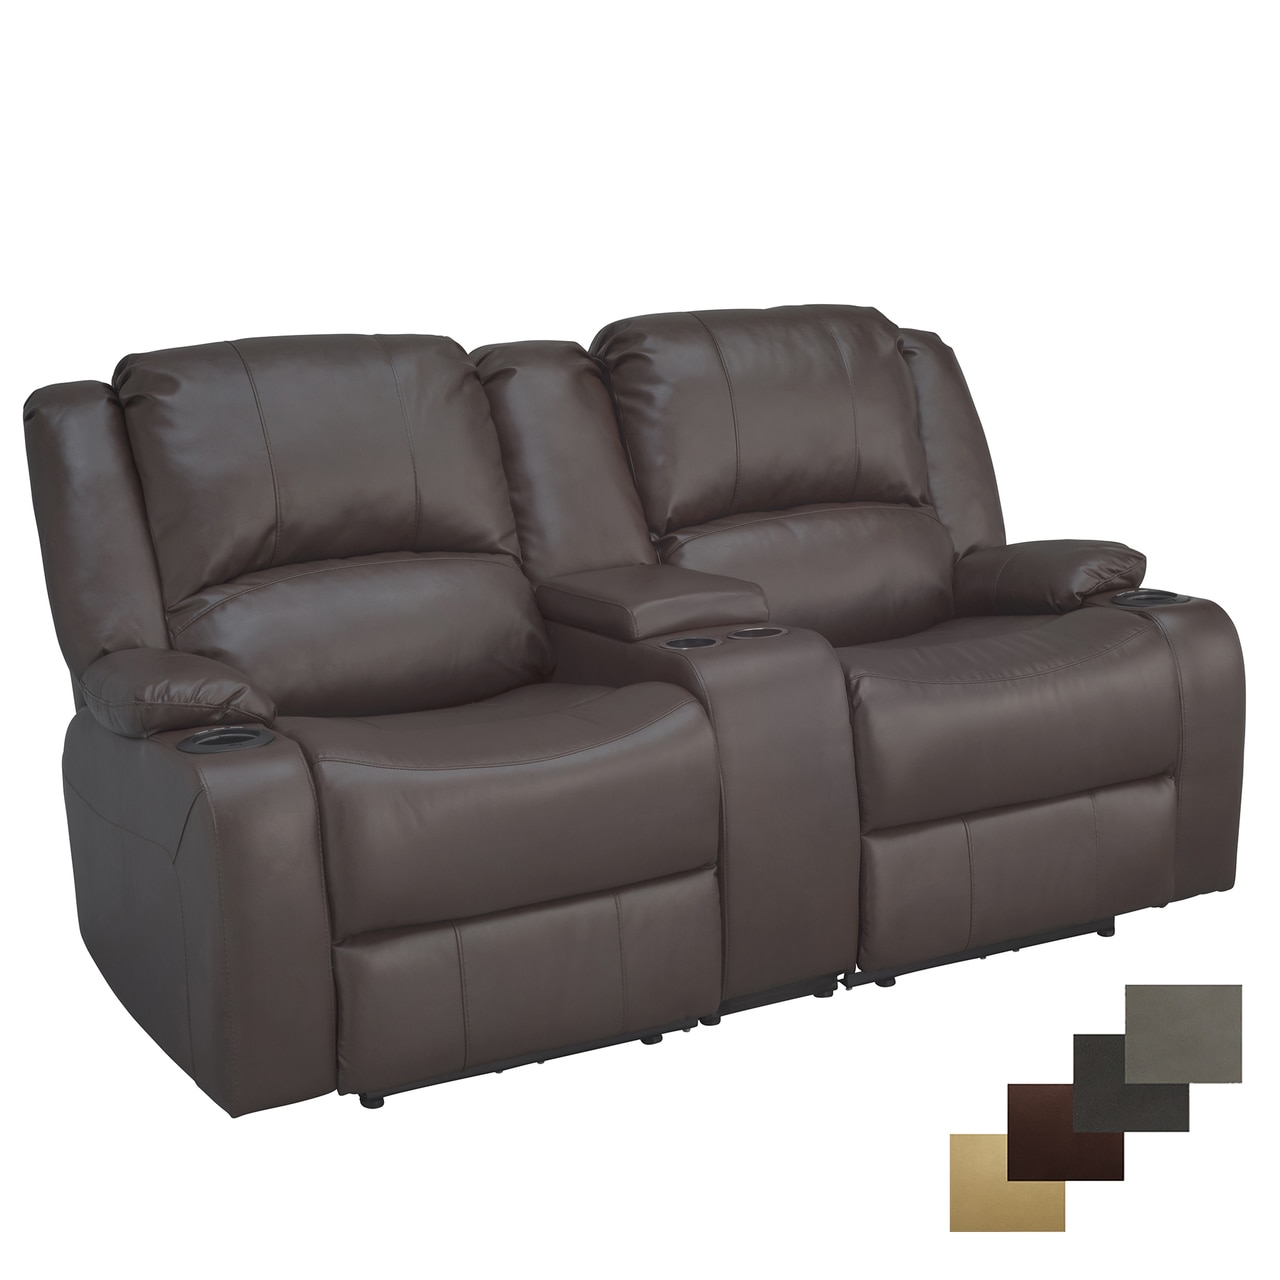 Recpro Charles 67 Ed Double Rv Wall Hugger Recliner Sofa W Console